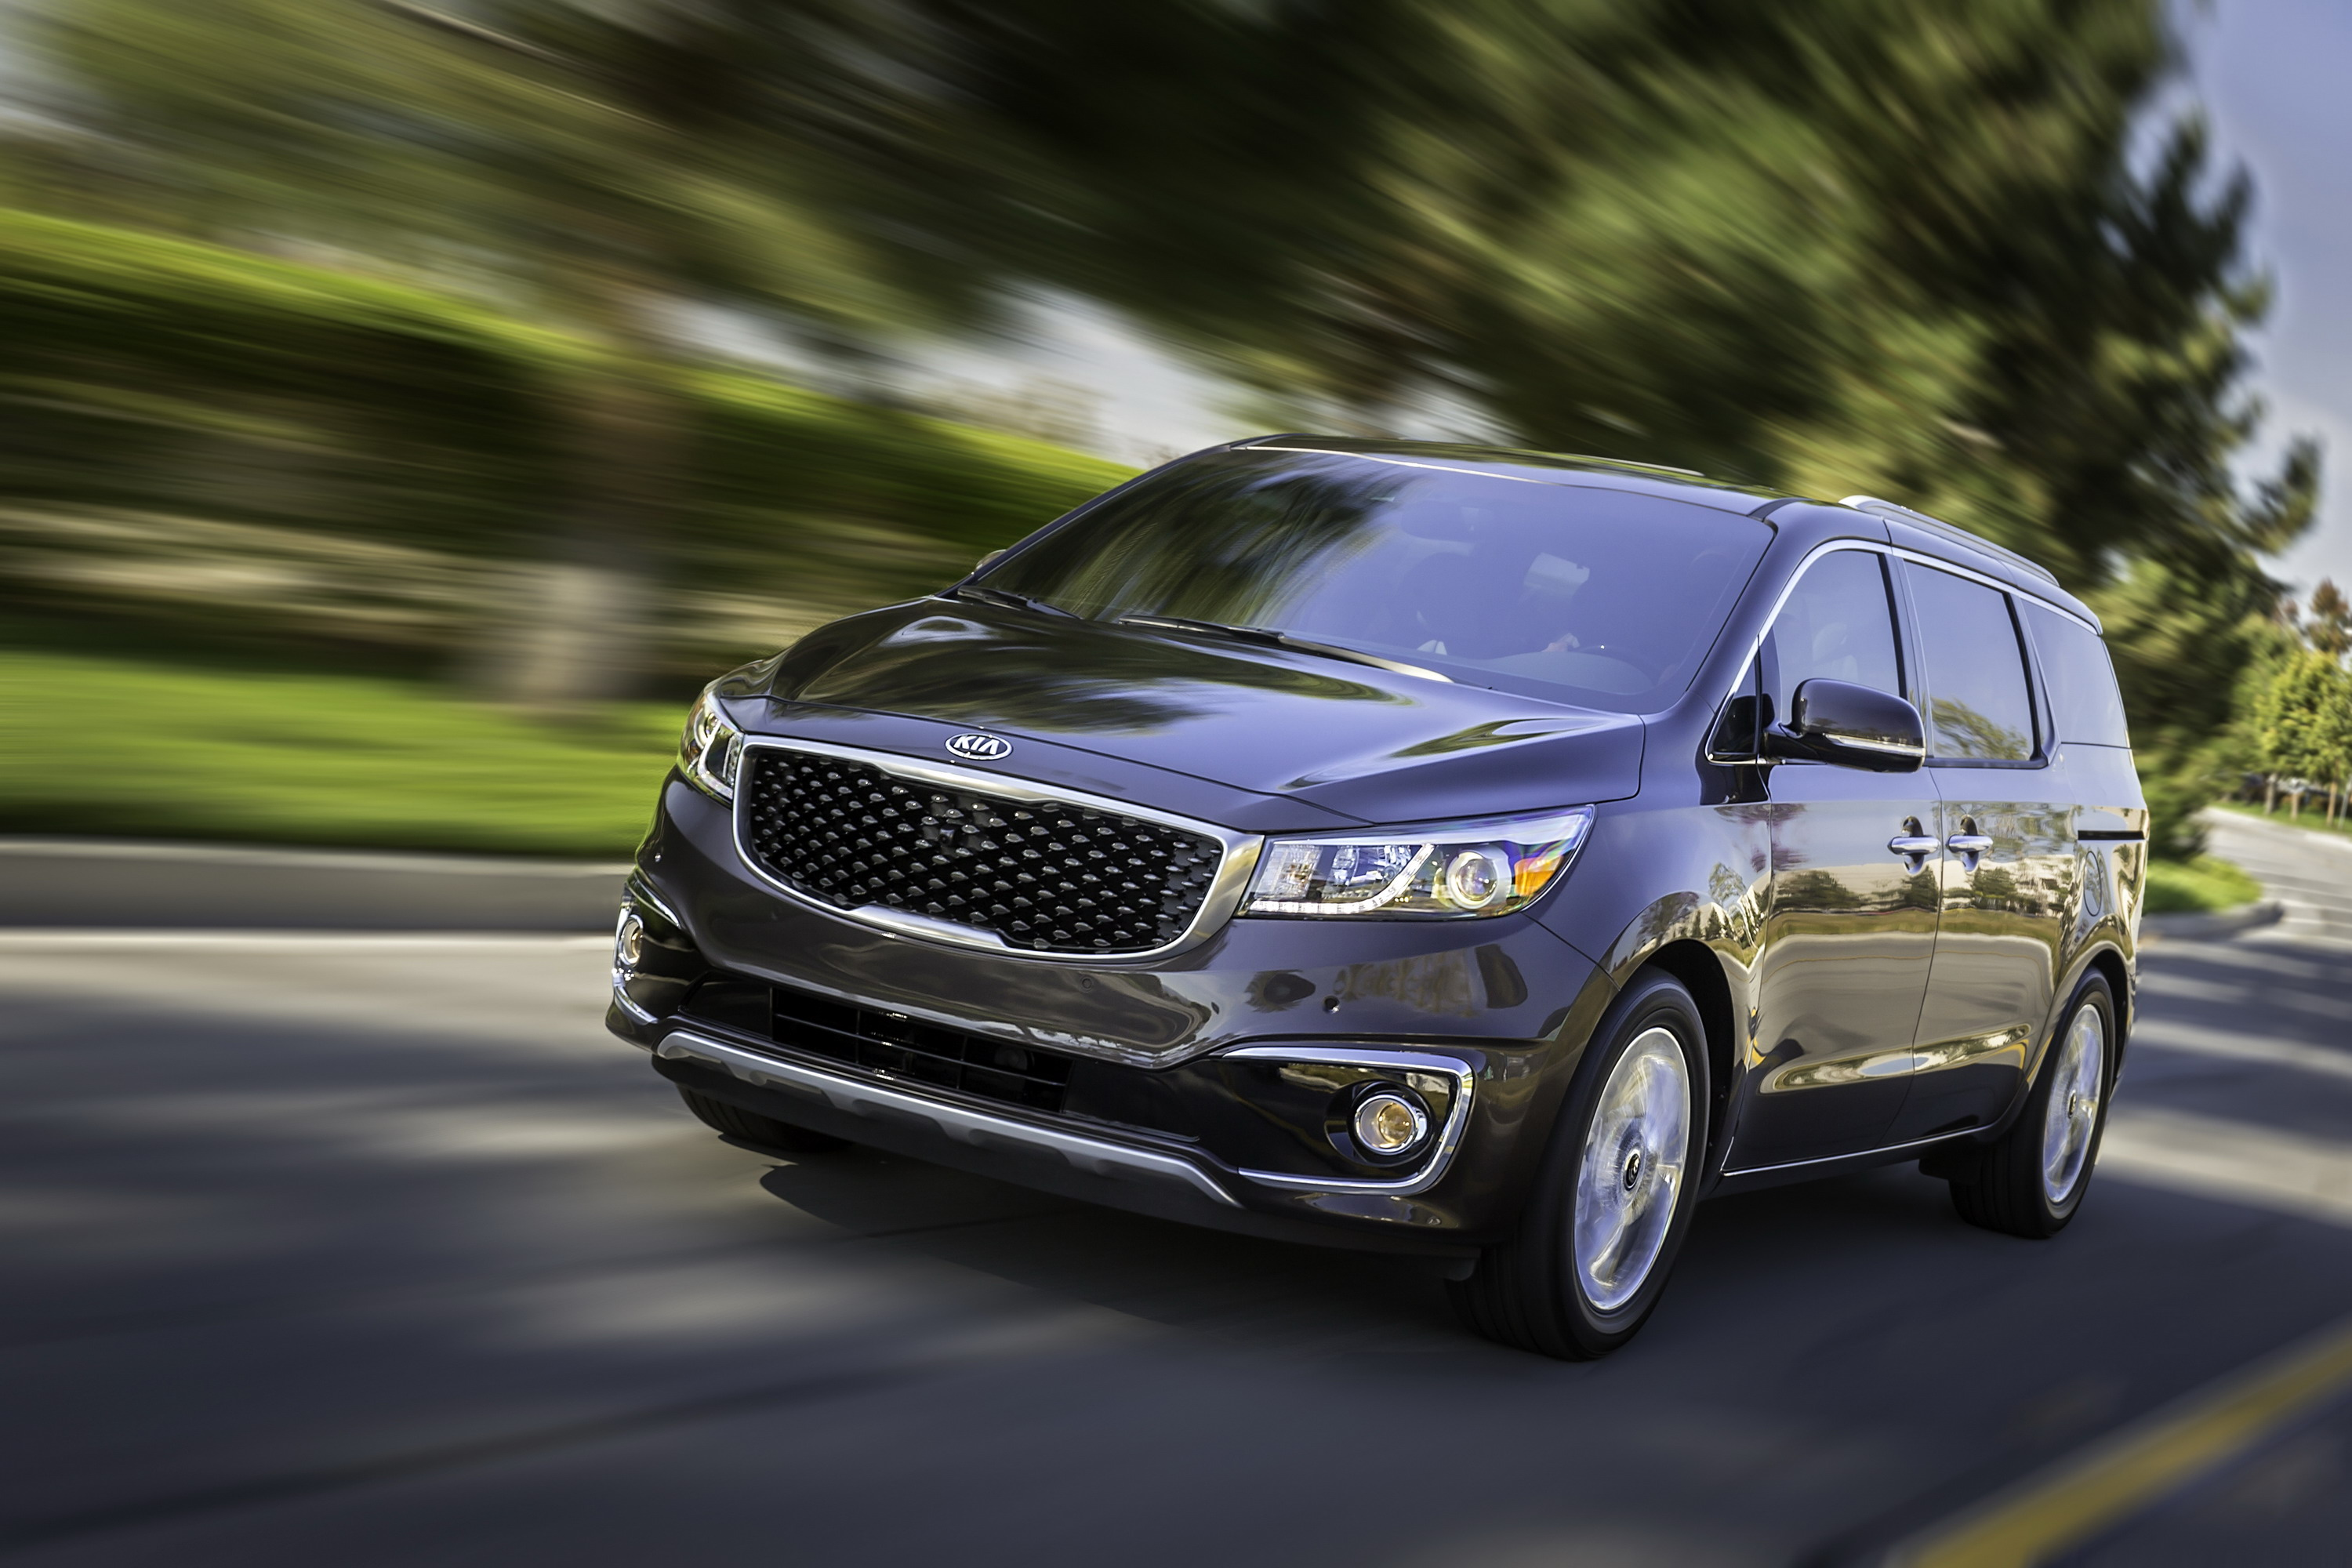 drive sxl dsc speed kia blog ex first sedona six